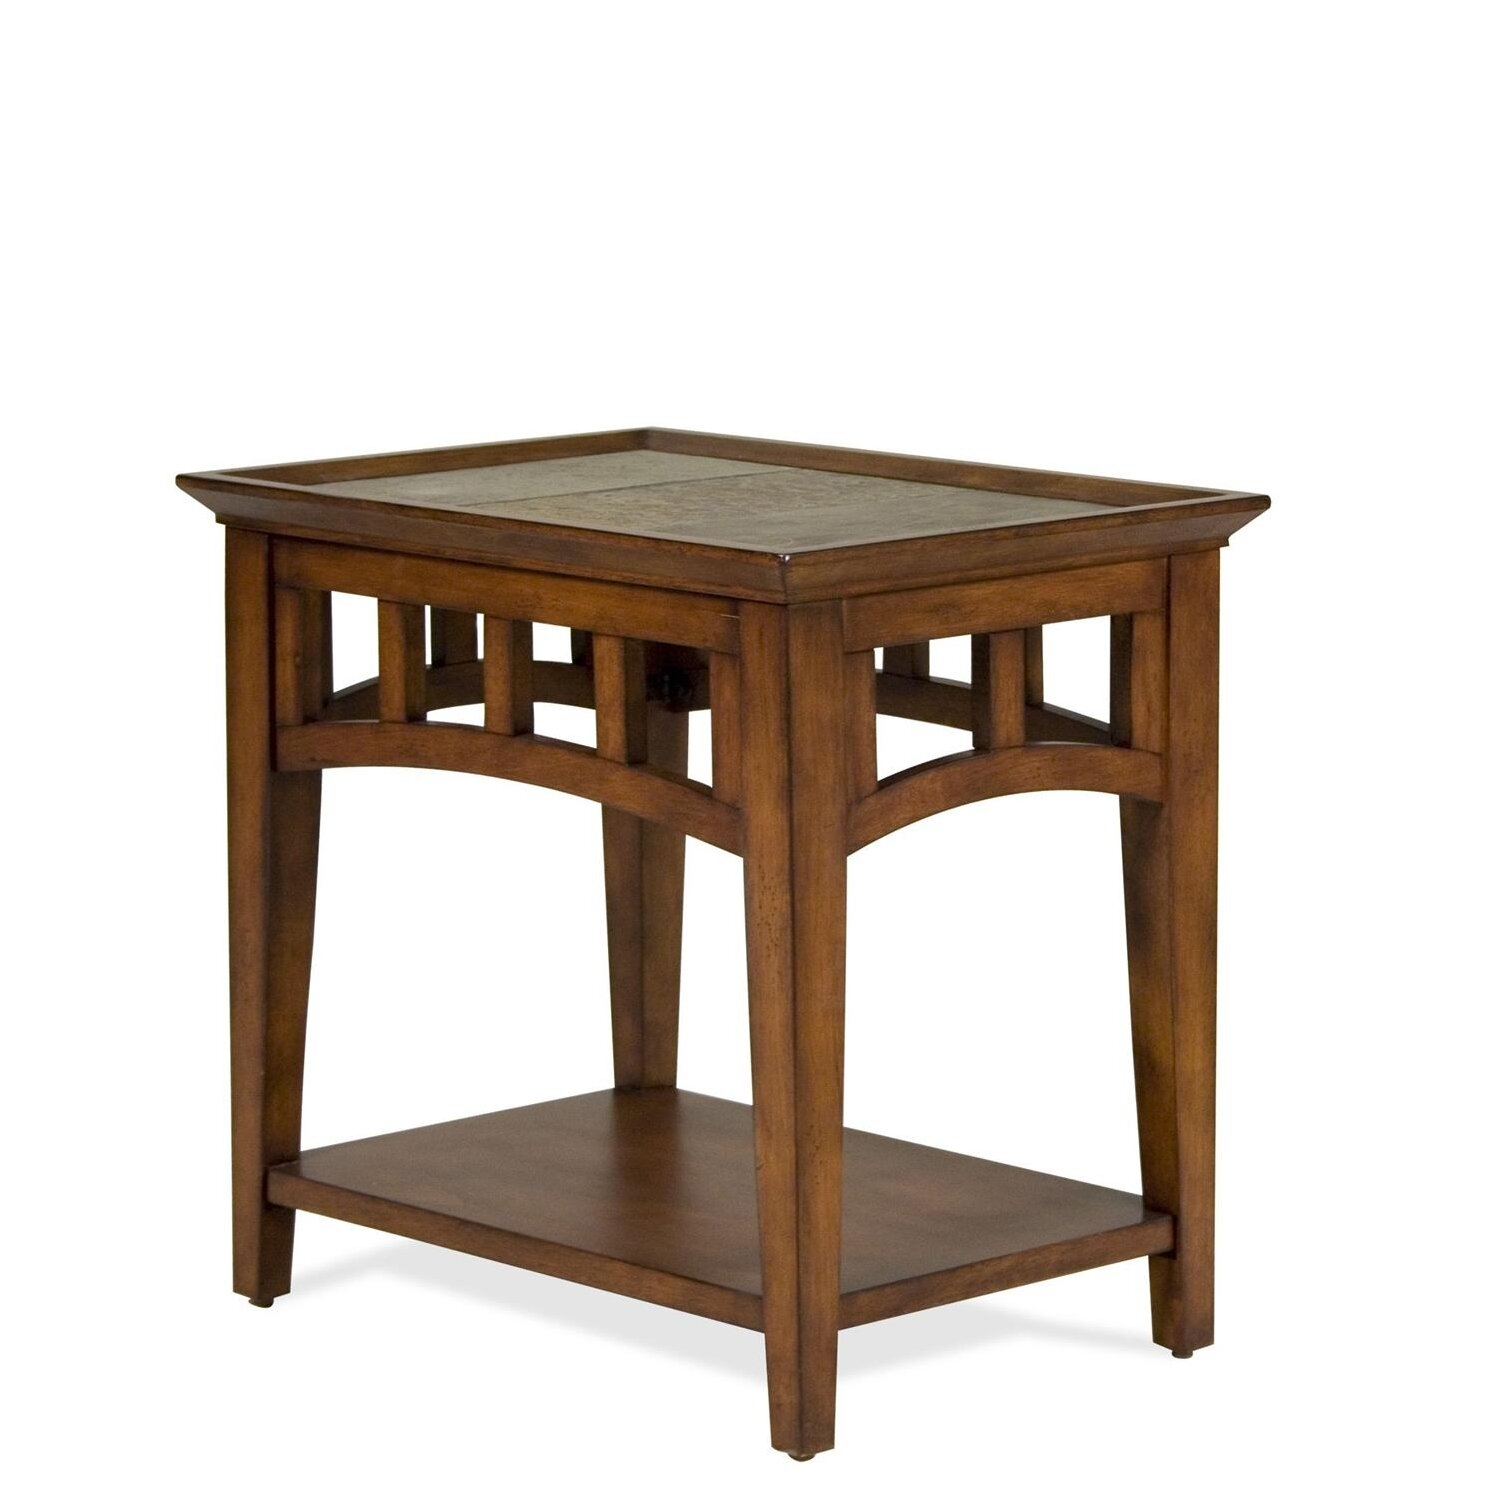 Riverside furniture andorra end table reviews wayfair for C tables for living room